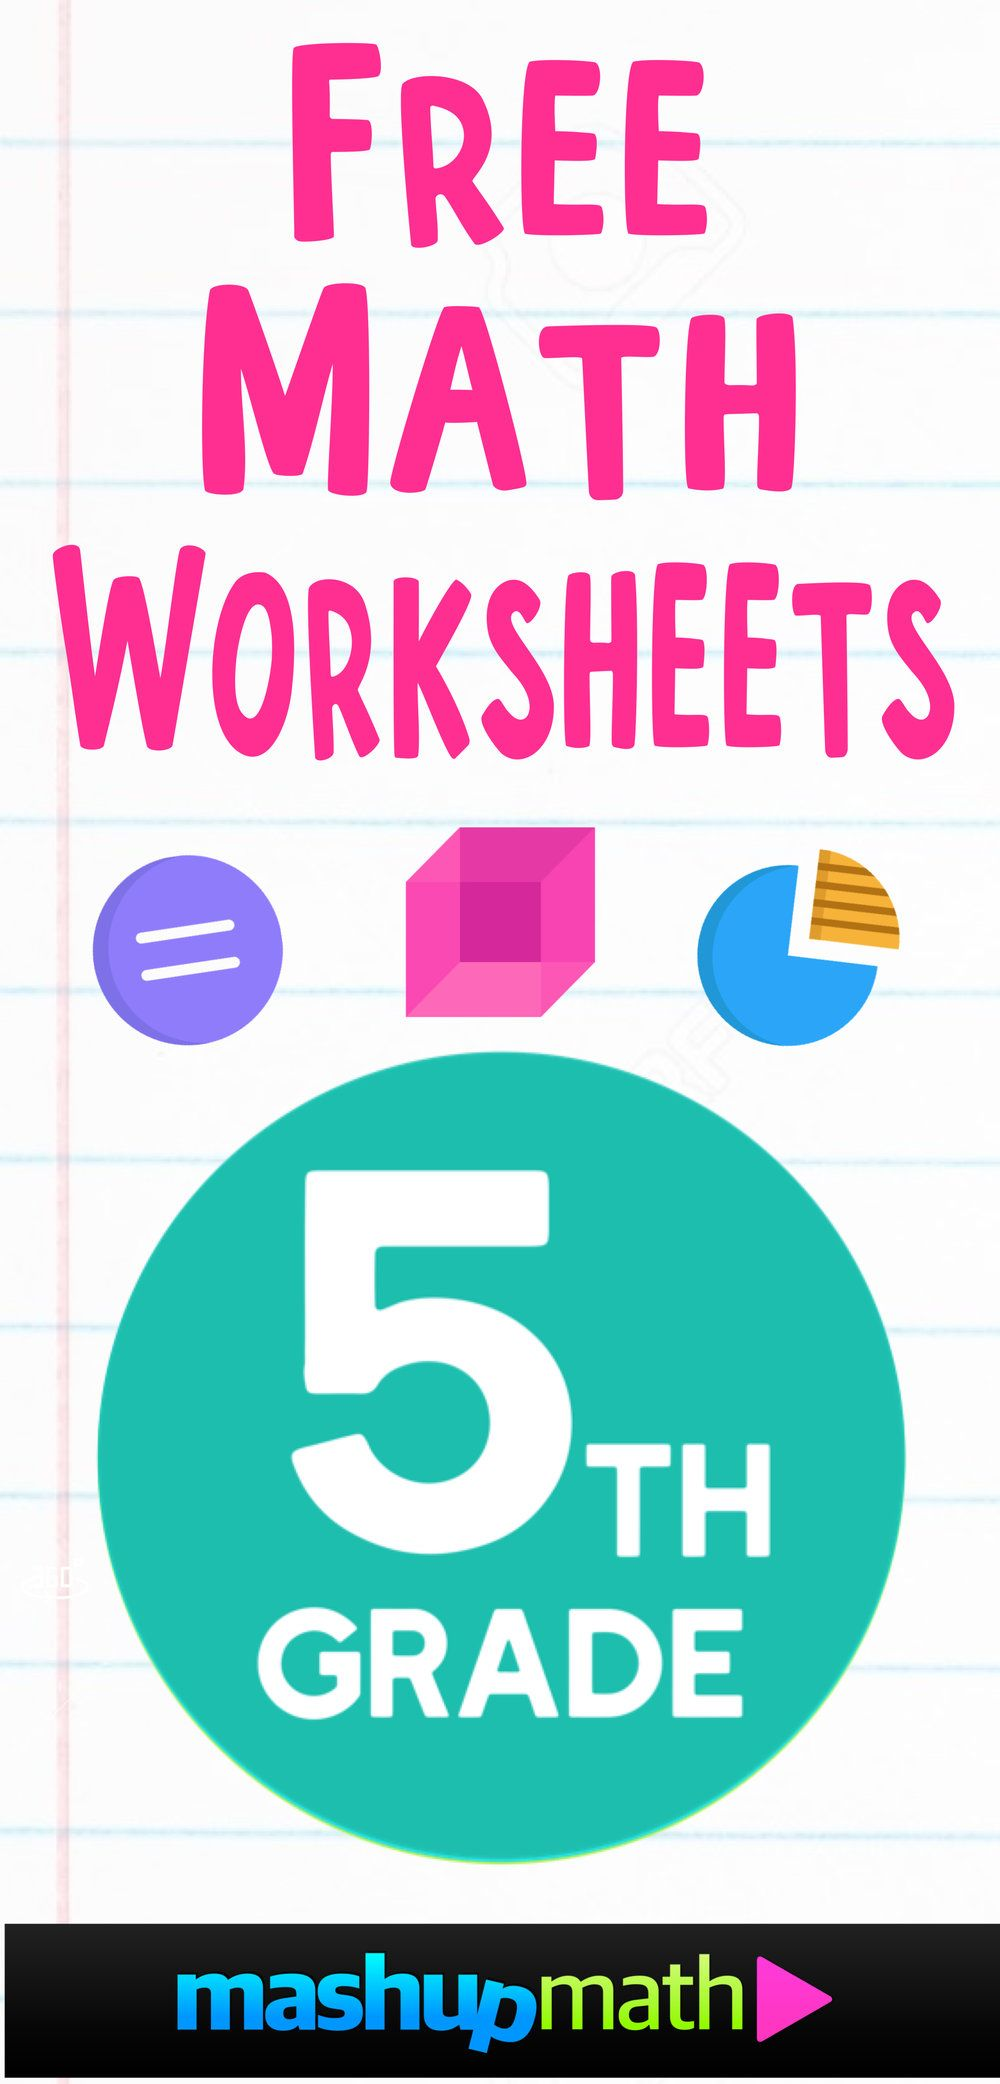 Are You Looking For Free Printable Math Worksheets For Fifth Grade Check Out This Huge C Free Printable Math Worksheets 5th Grade Math Grade 5 Math Worksheets [ 2084 x 1000 Pixel ]